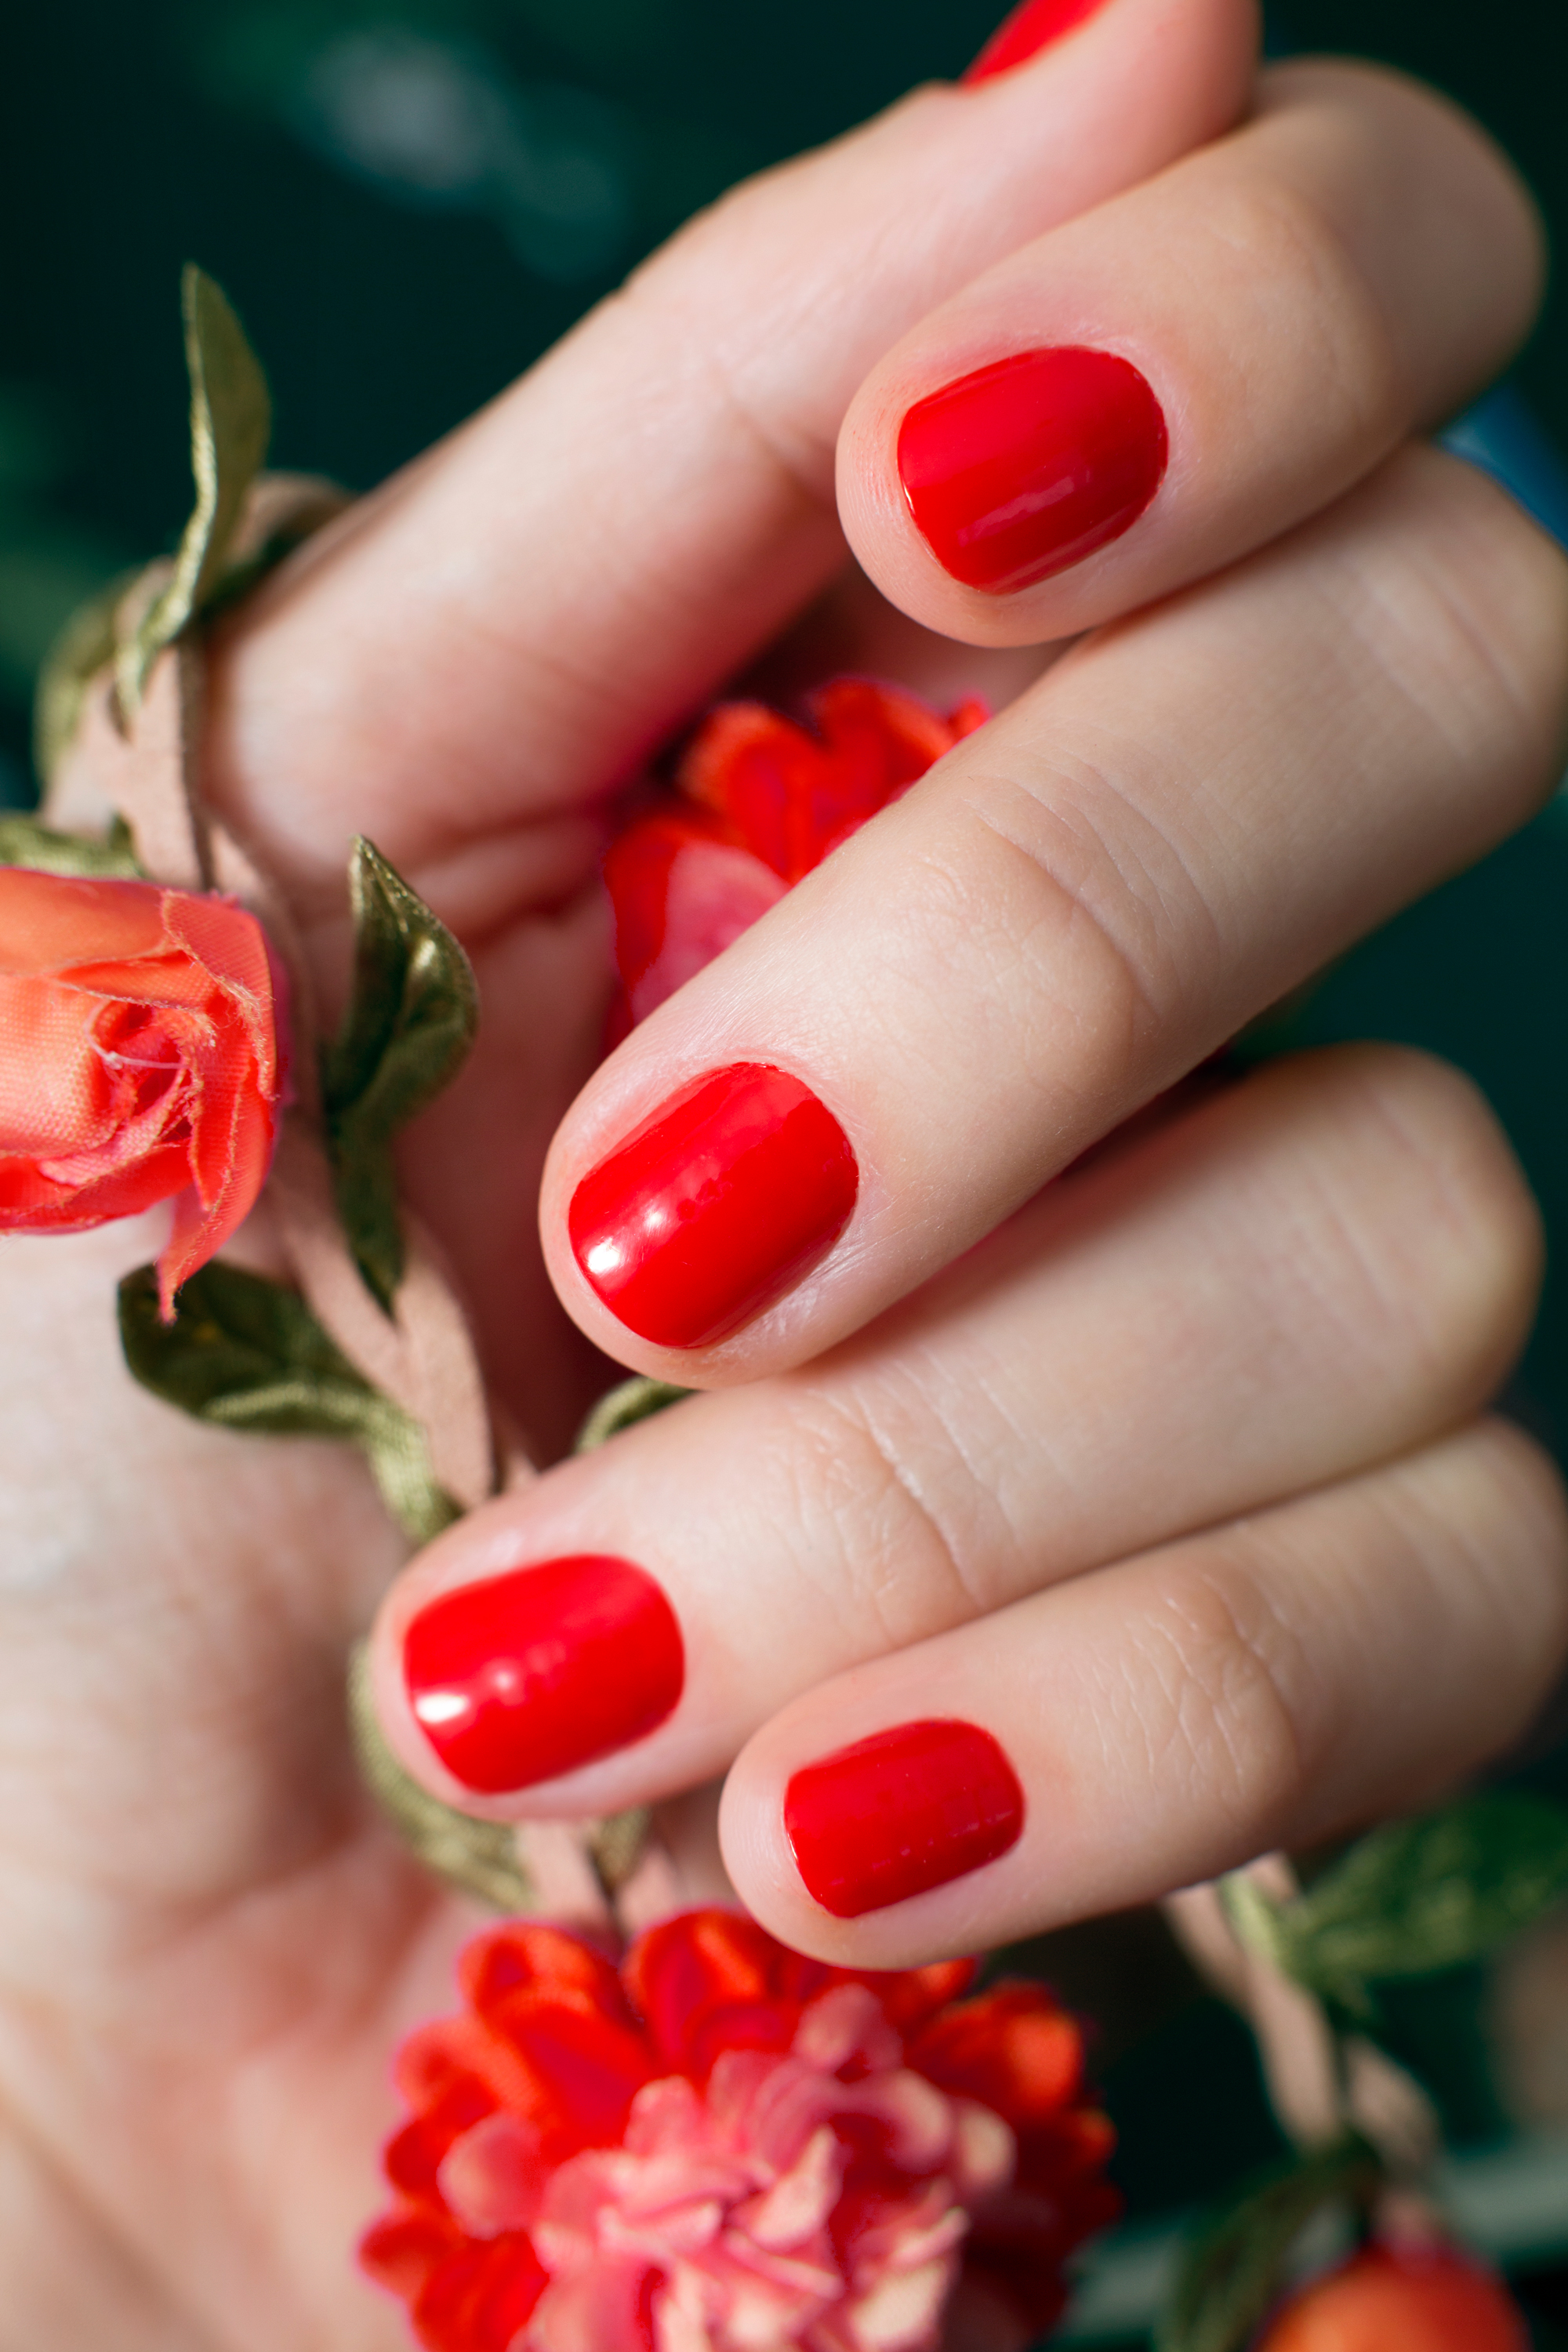 The Best Red Nail Polishes of All Time, According to InStyle's Editors